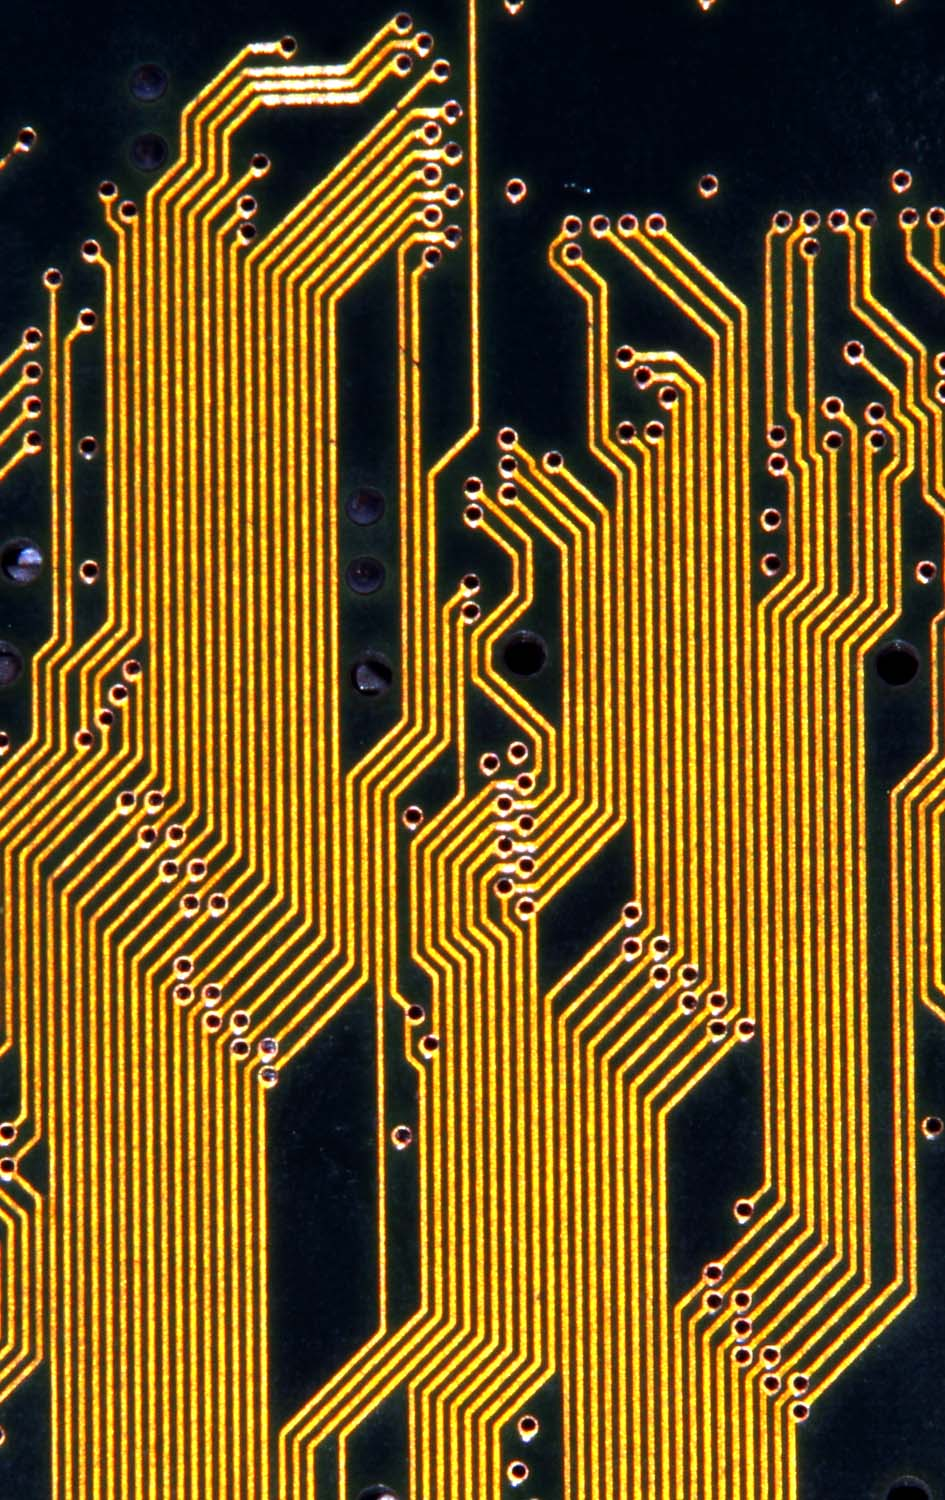 Circuit,Board,breadboard,stripboard,electronics,buildings,city,urbam,congested,solder,component,electrical,logic,etched,etching,PCB,printed circuit board,printed,copper,wire,components,maplins,mullard,PCBA,substrate,sub,strate,IPC,through-hole,construction,through,hole,foil,Patterning,tony,smith,hotpix,hotpixuk,Surface-mount,technology,Surface,mount,Grappenhall Village,Grappenhall,Cheshire,England,UK,village,Warrington,A50,A56,integrated,circuits,365days,www.thewdcc.org.uk,thewdcc.org.uk,wdcc.org.uk,society,District,Camera,club,photographic,photography,SLR,DSLR,group,GYCA,Bellhouse,bellhouse Club,extrememacro,hotpix.freeserve.co.uk